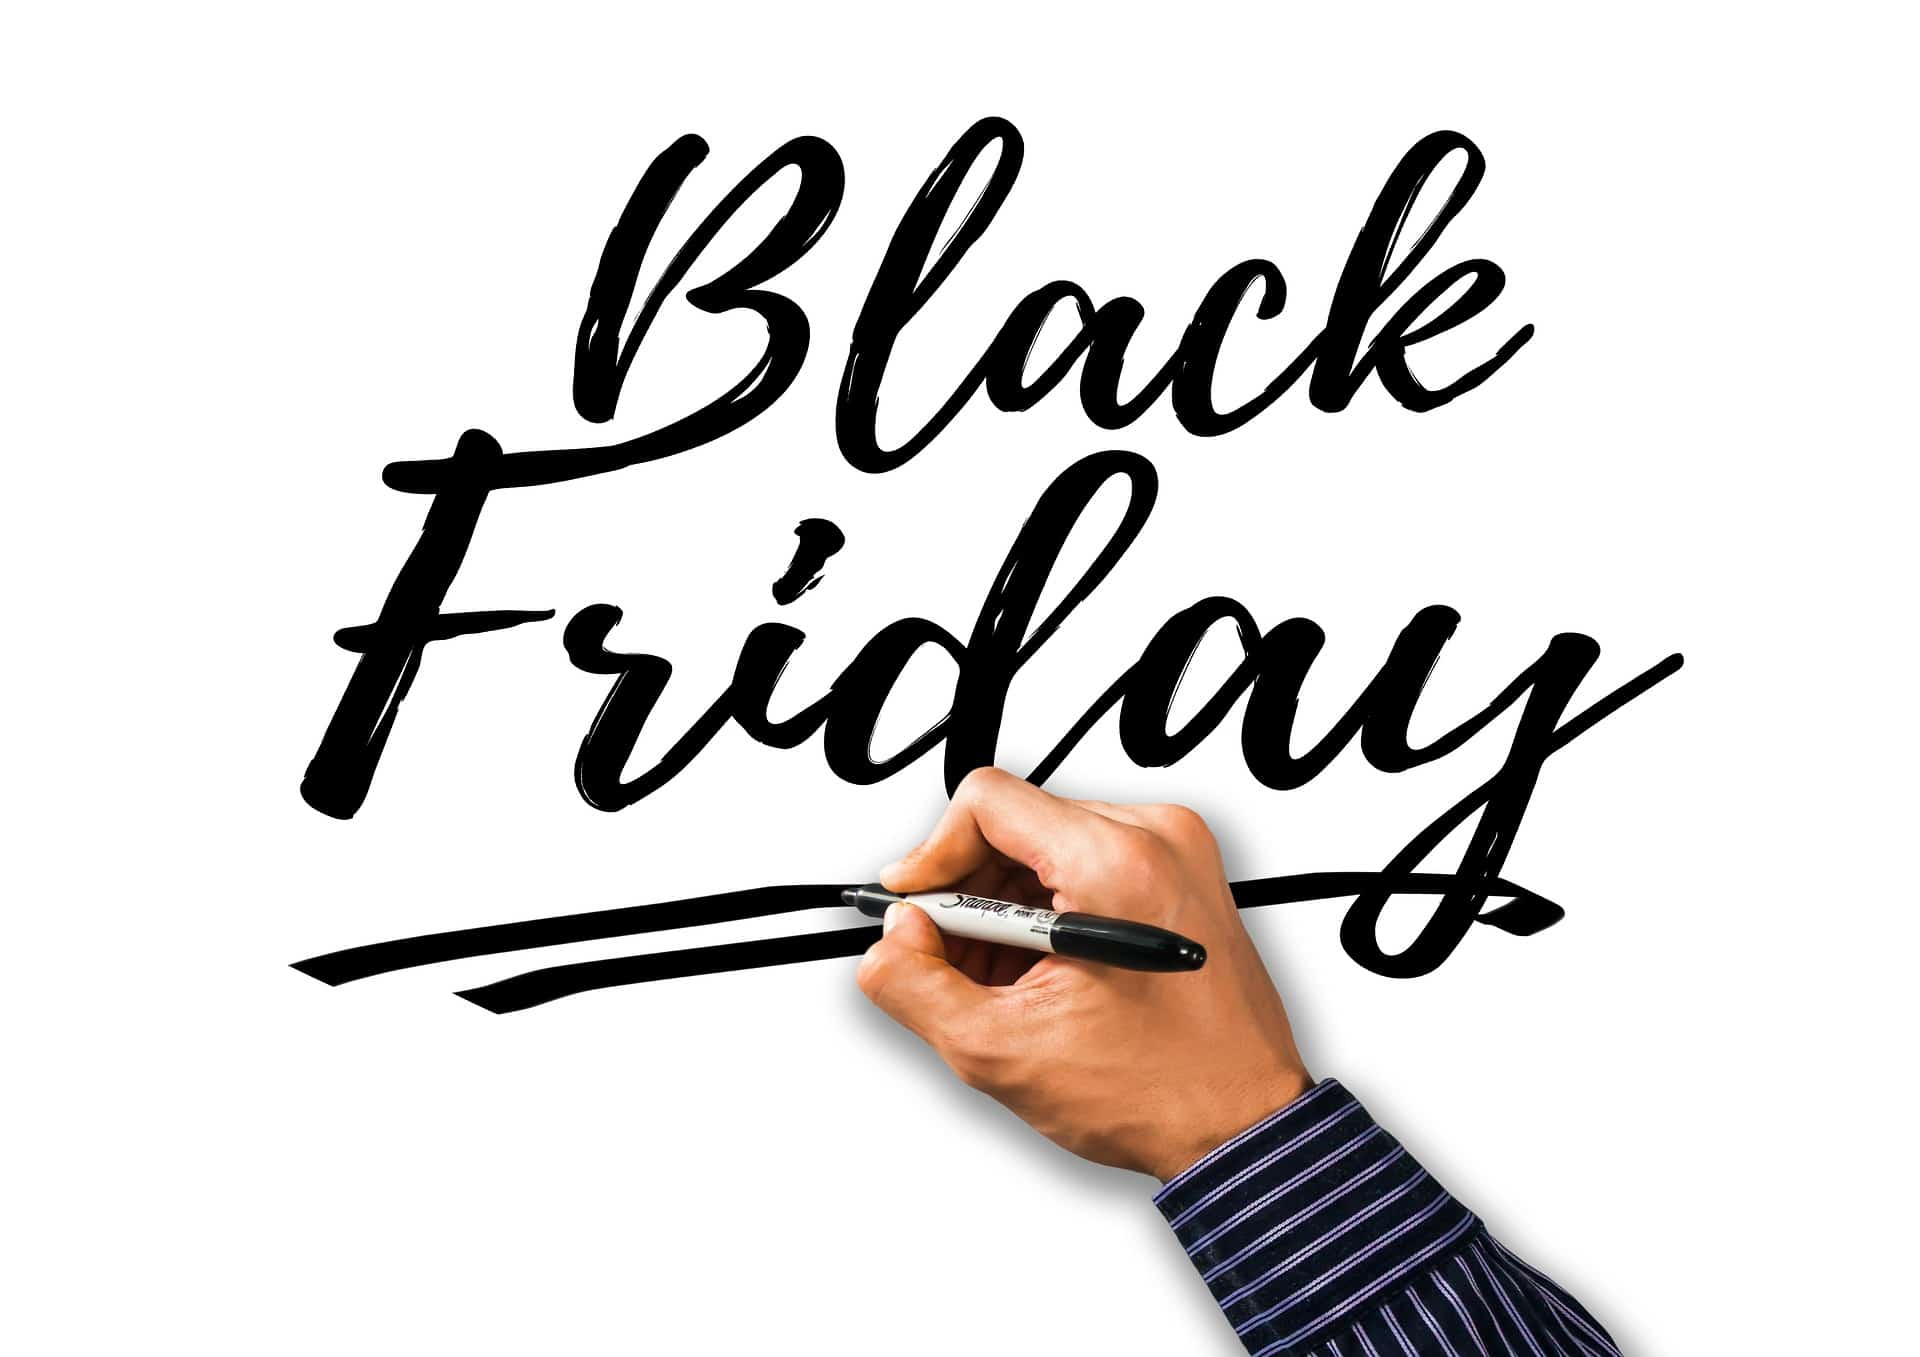 How to Create a Compelling Black Friday or Cyber Monday Promotion, How to Create a Compelling Black Friday or Cyber Monday Promotion